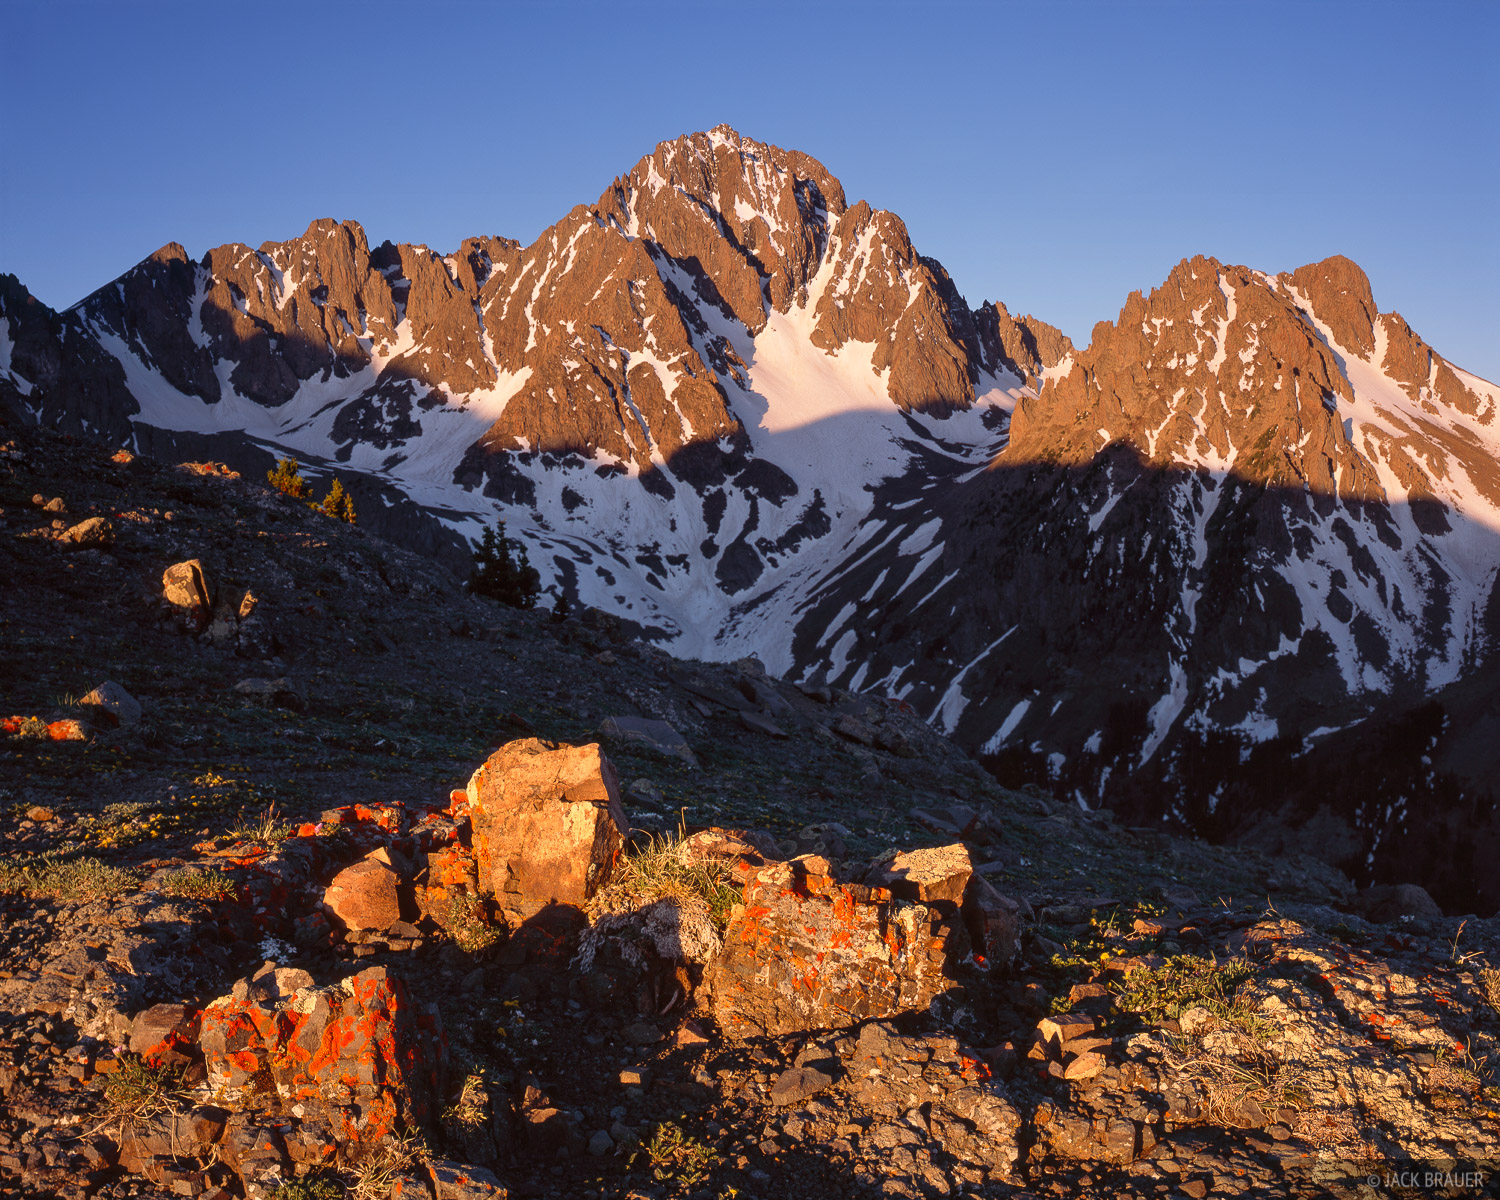 Mt. Sneffels, San Juan Mountains, Colorado, fourteeners, photo